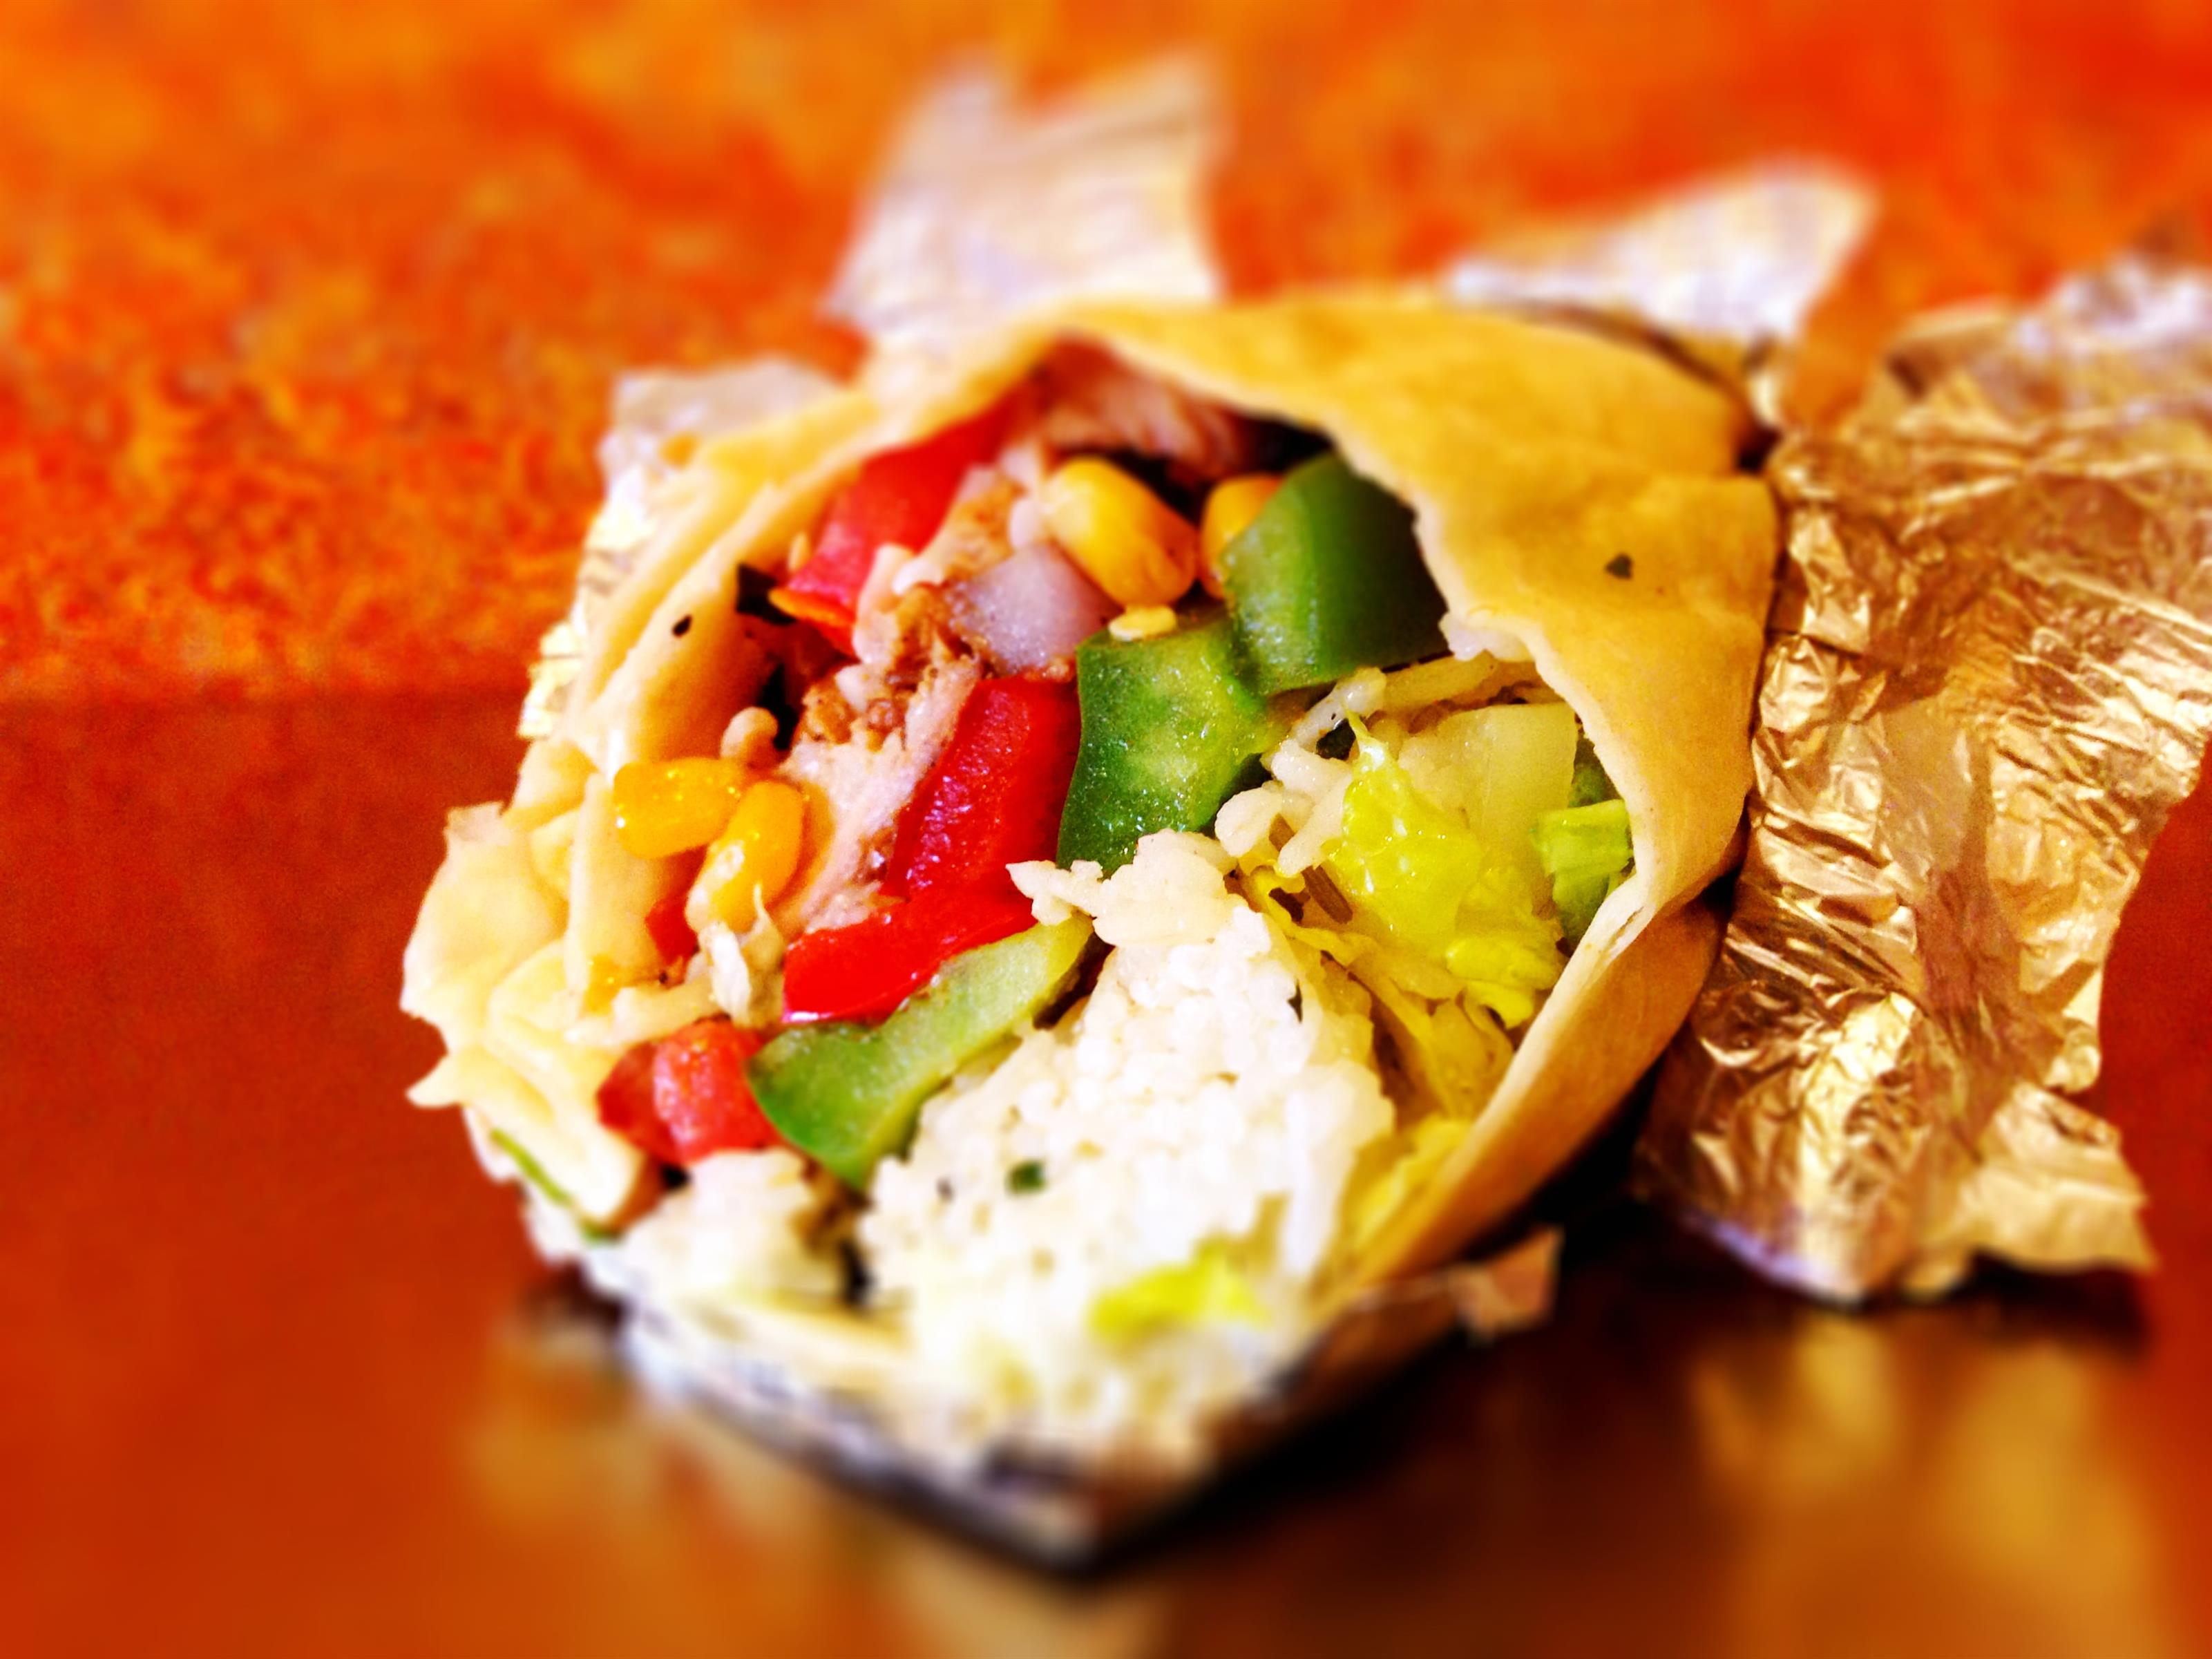 Burrito wrapped in aluminum foil filled with rice, peppers, corn and lettuce